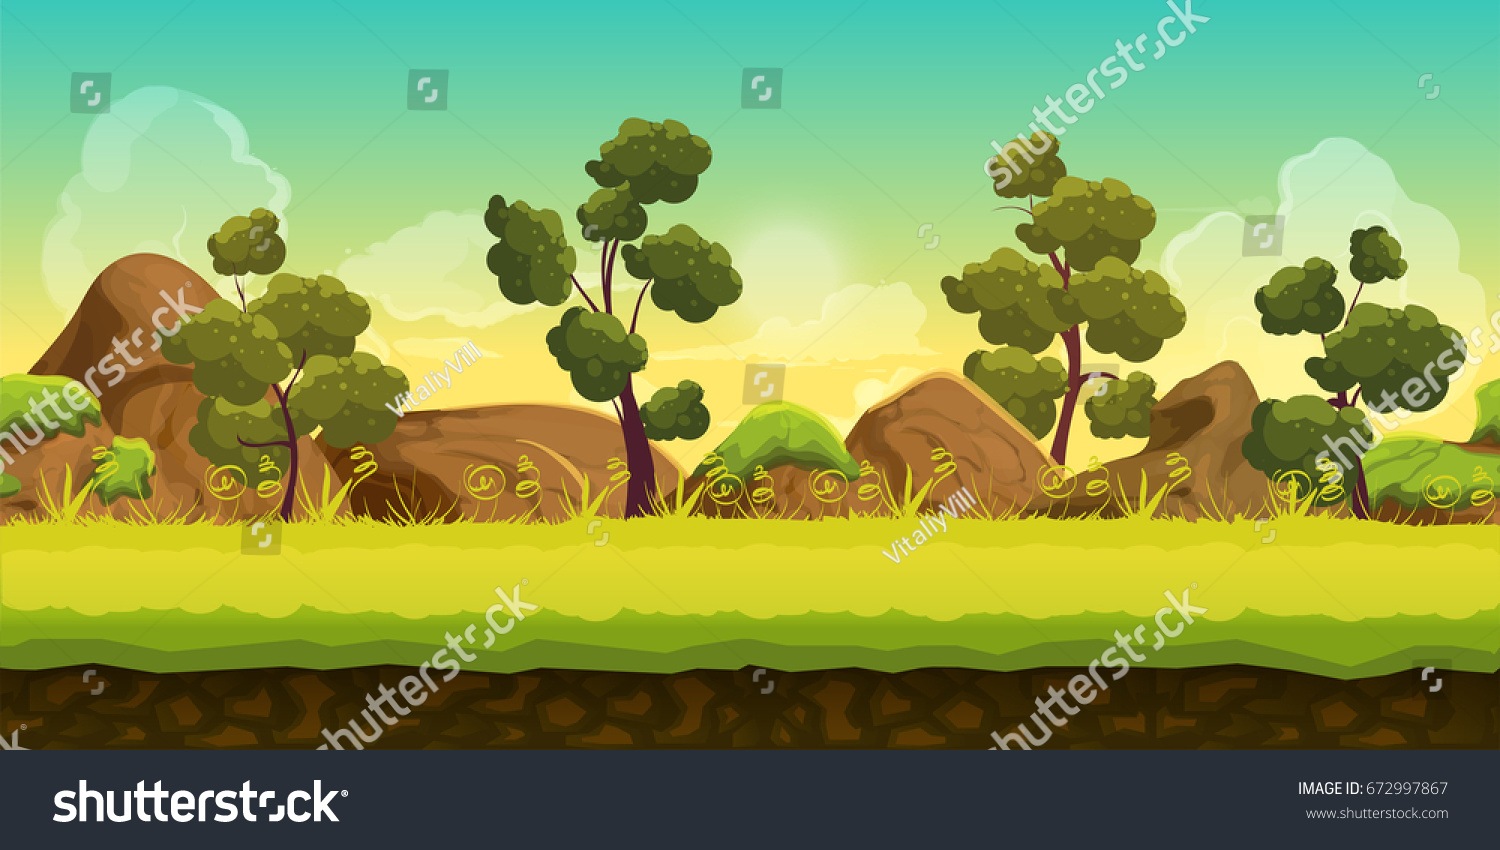 Forest stones 2d game landscape games stock illustration - 2d nature wallpapers ...